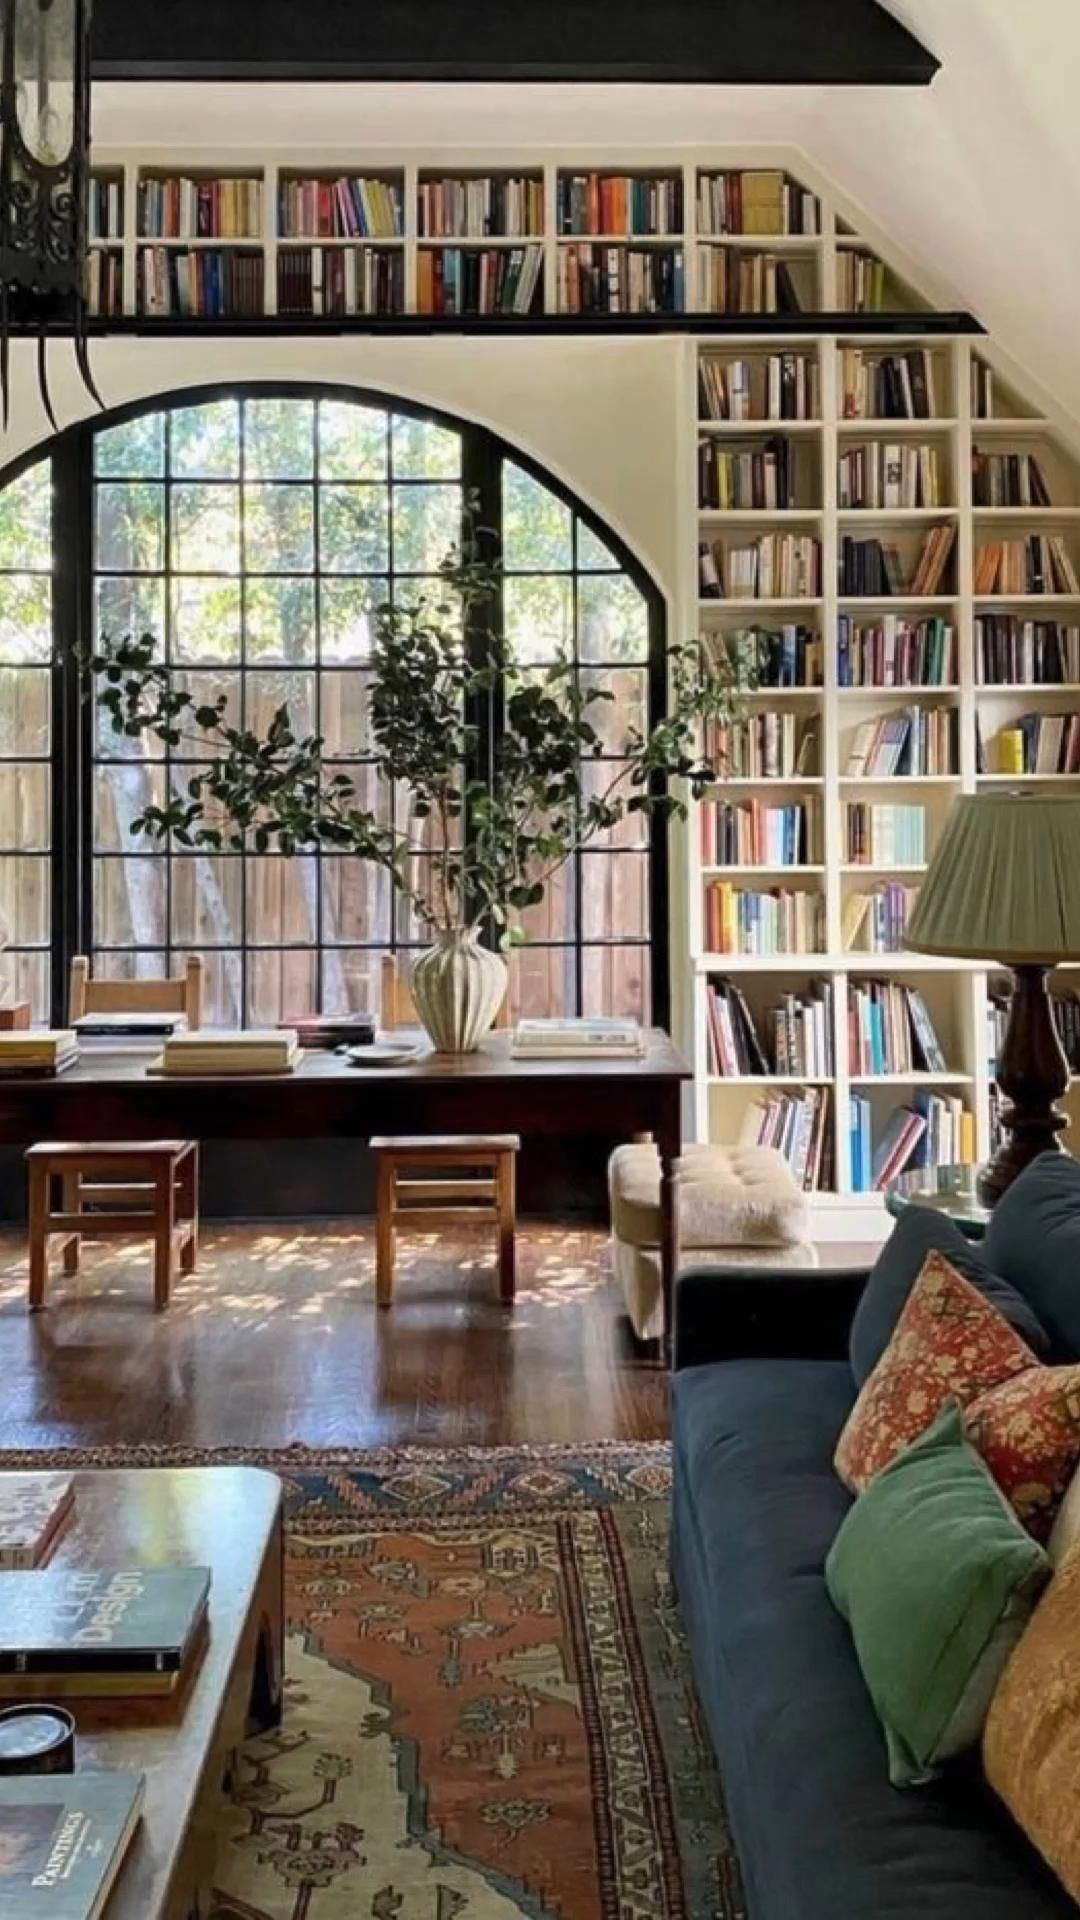 How to Lean Into Eclectic Granny The Minimalist Way (Via A Vintage Lover's Dream Home Tour